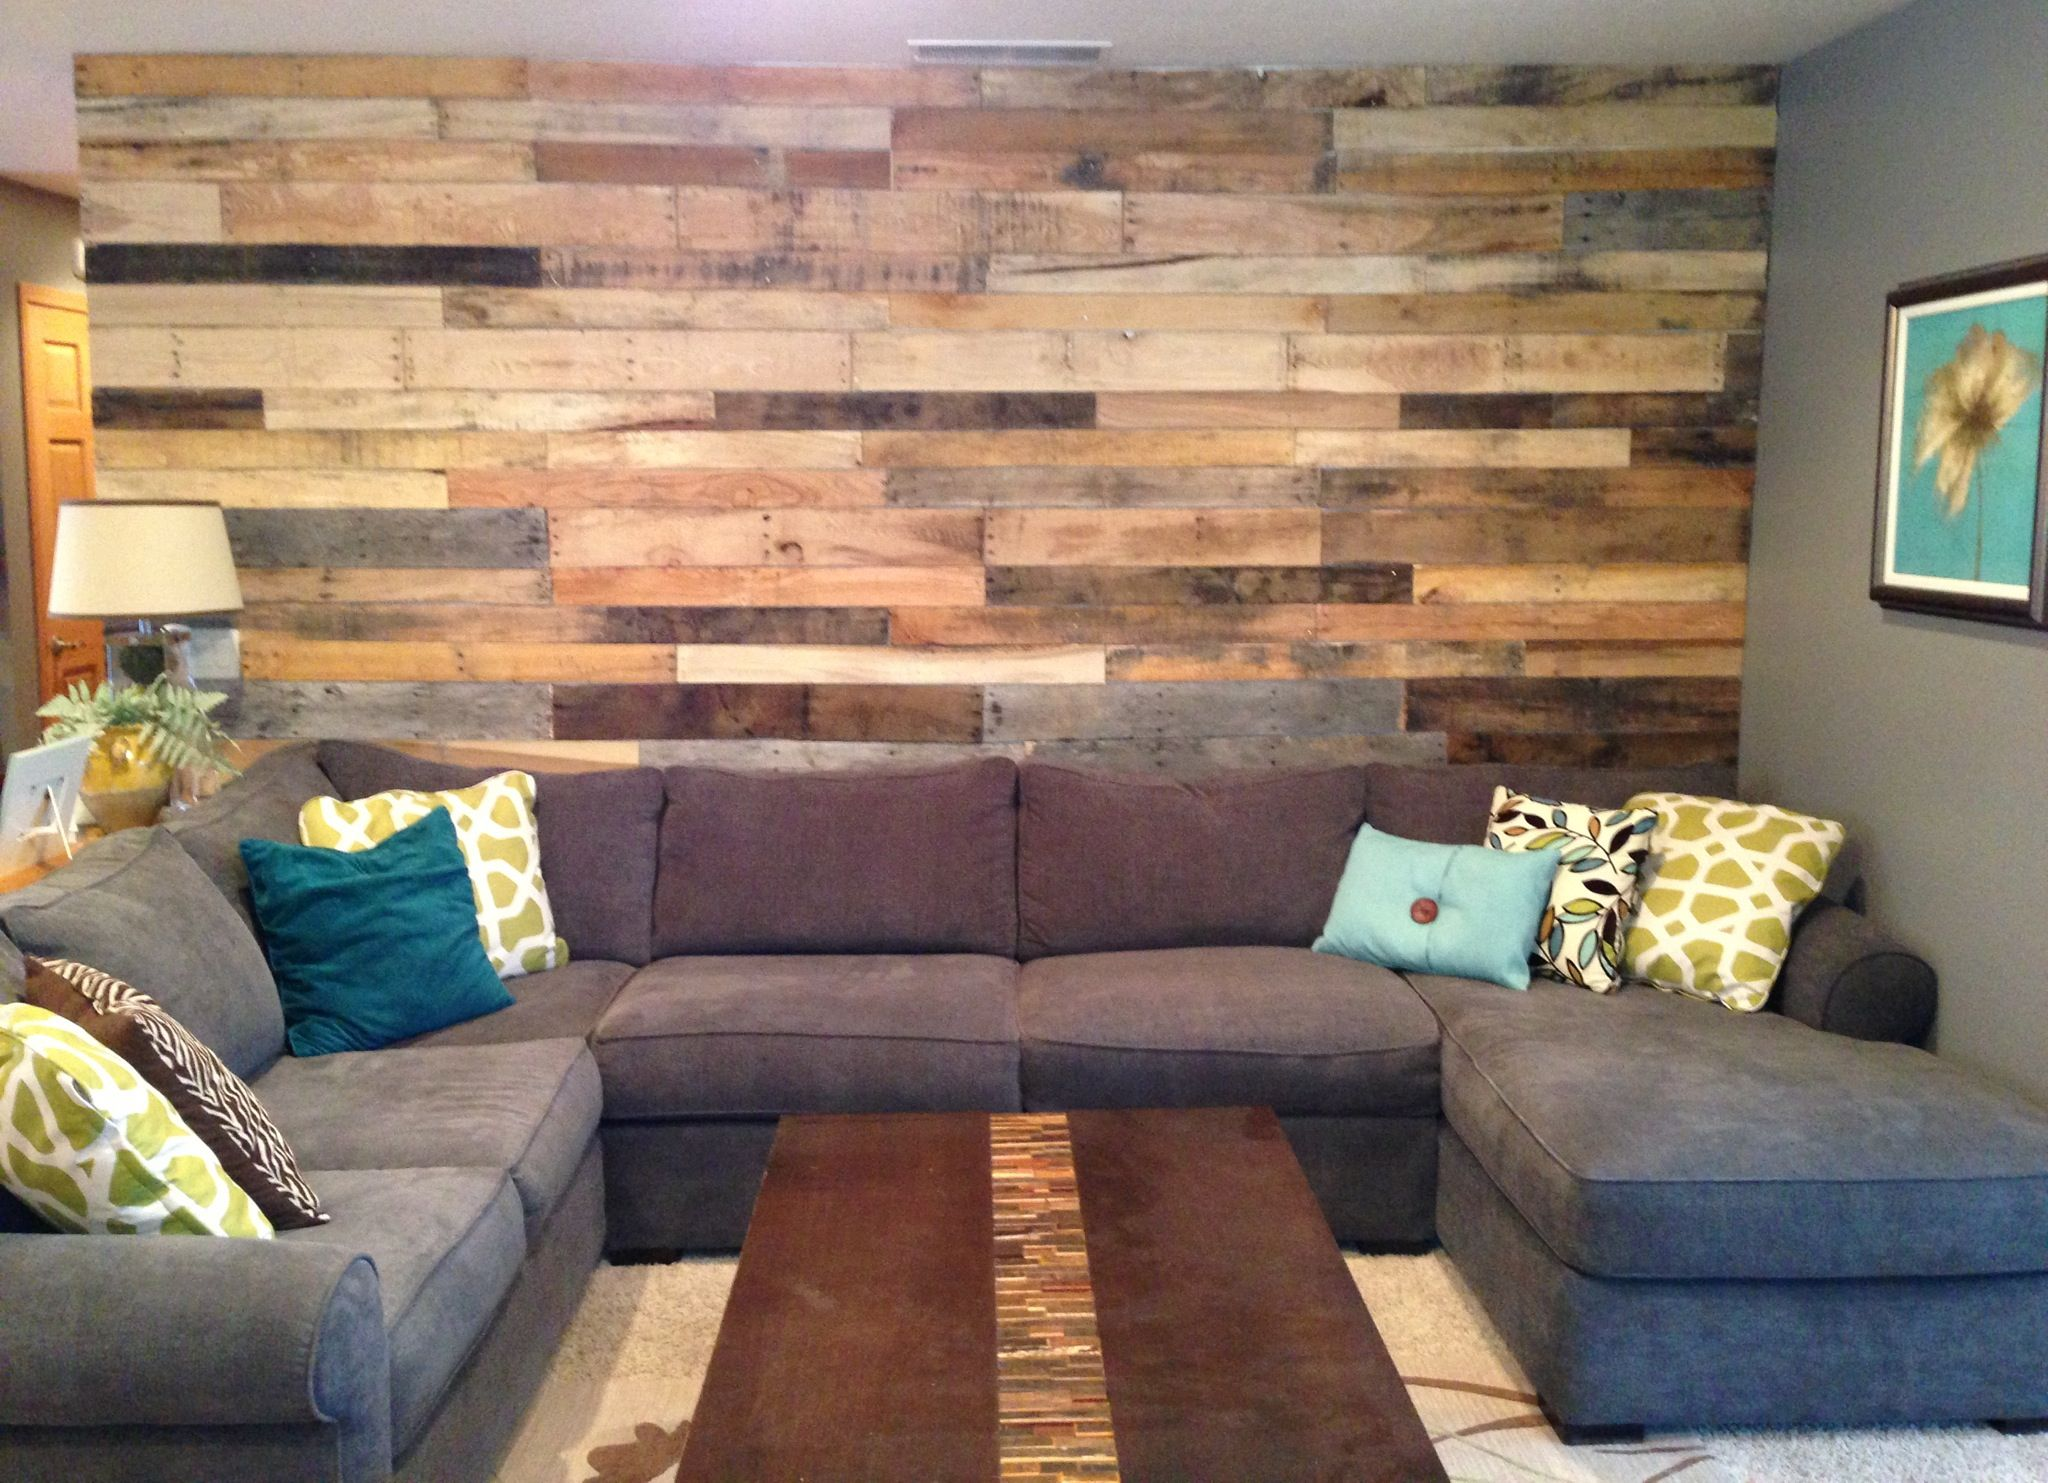 Pin By Erin Petz On Stuff By Me Pallet Wall Decor Living Room Pictures Pallet Wall Bedroom